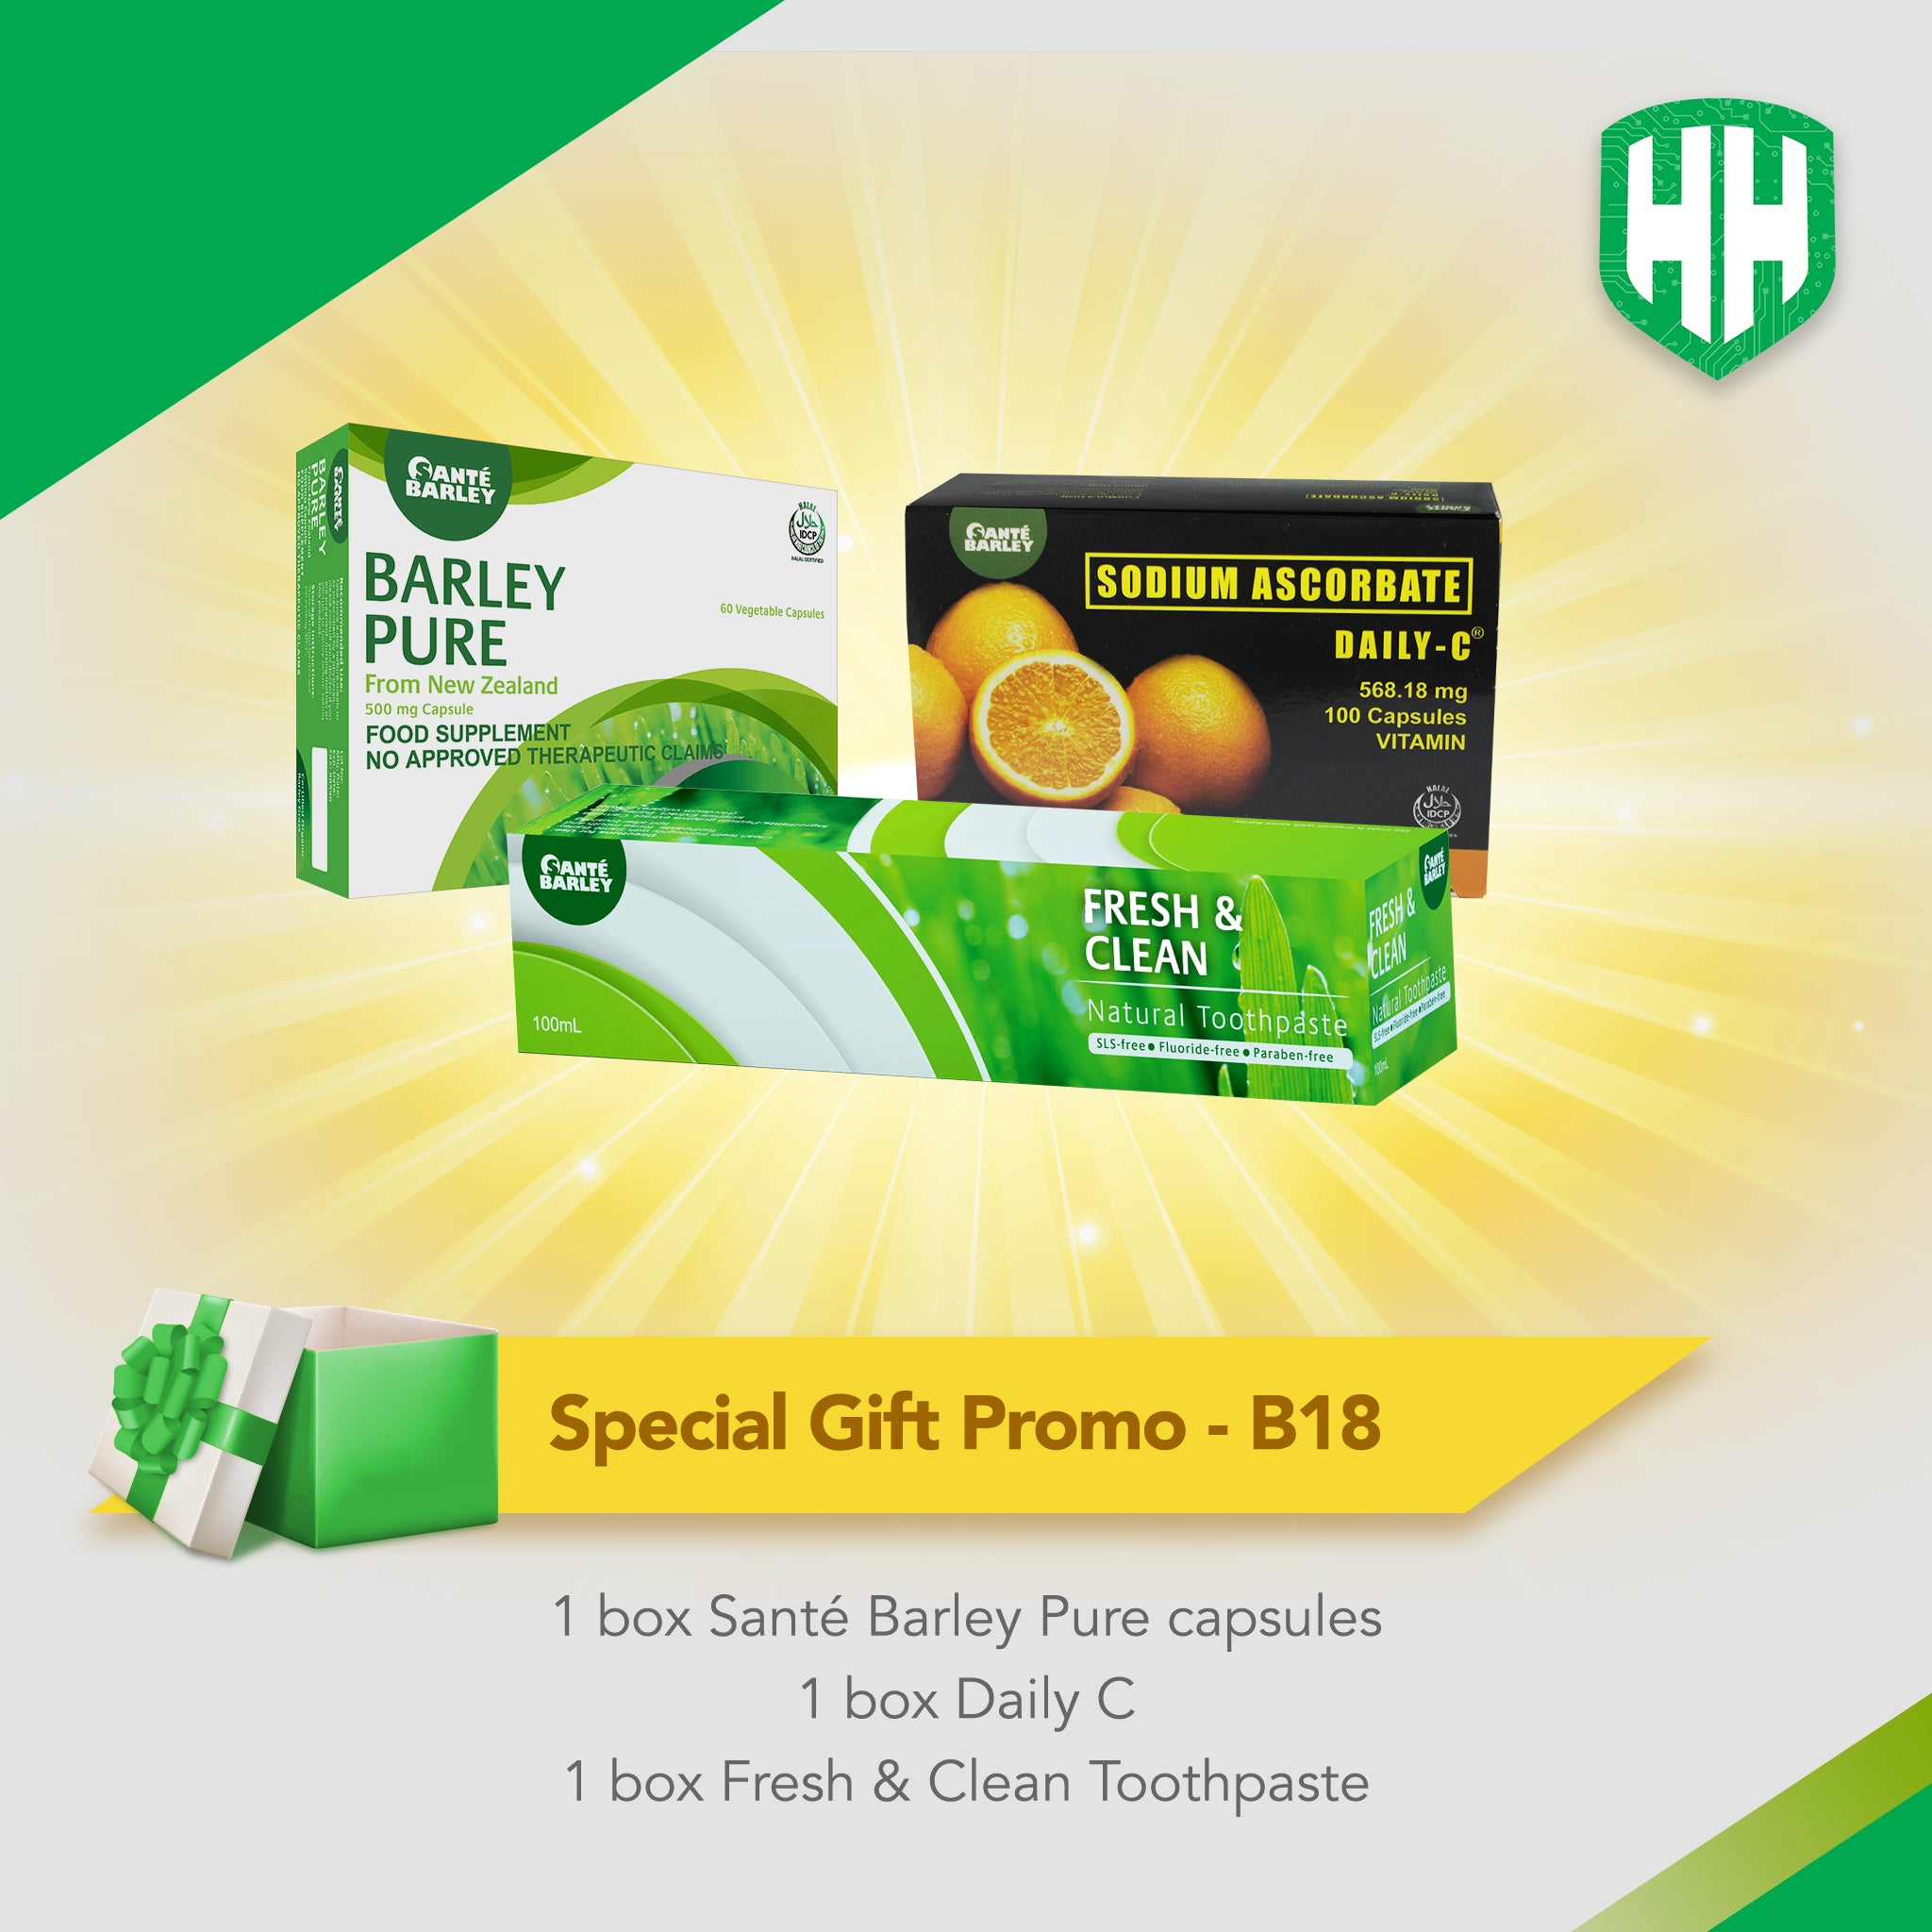 Special Gift Promo B18